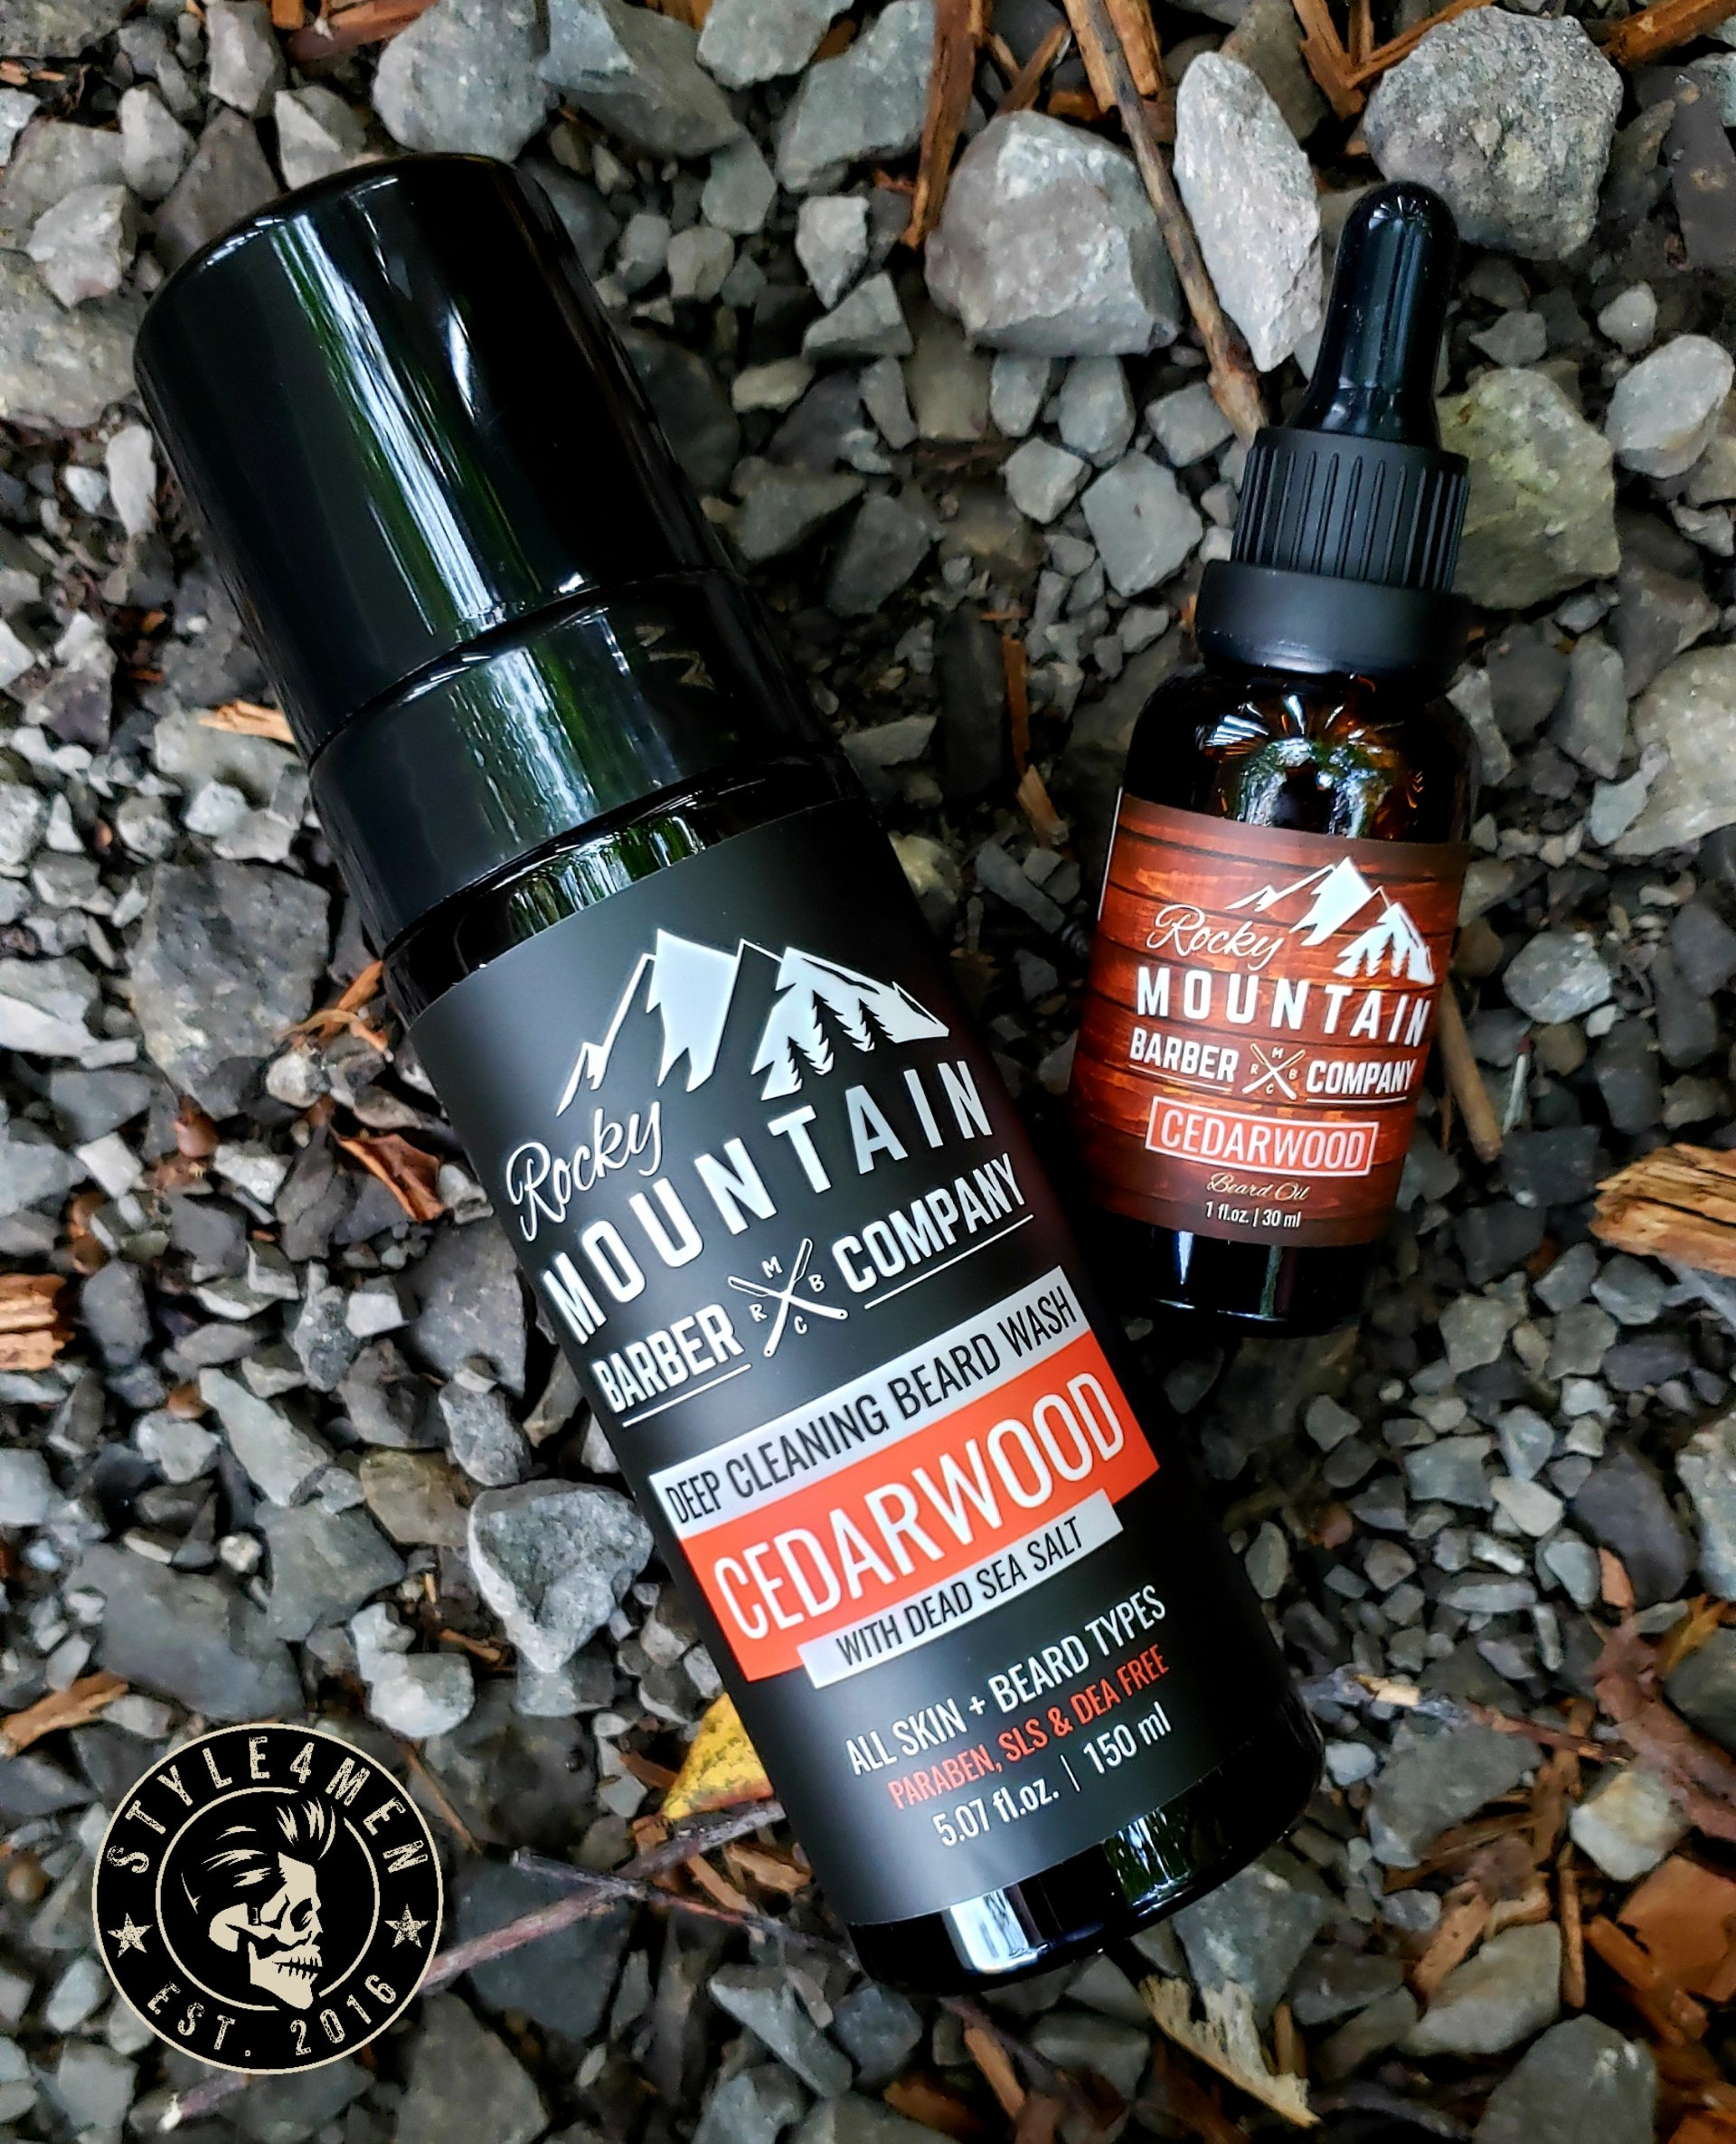 Beard Care by the Rocky Mountain Barber Co.